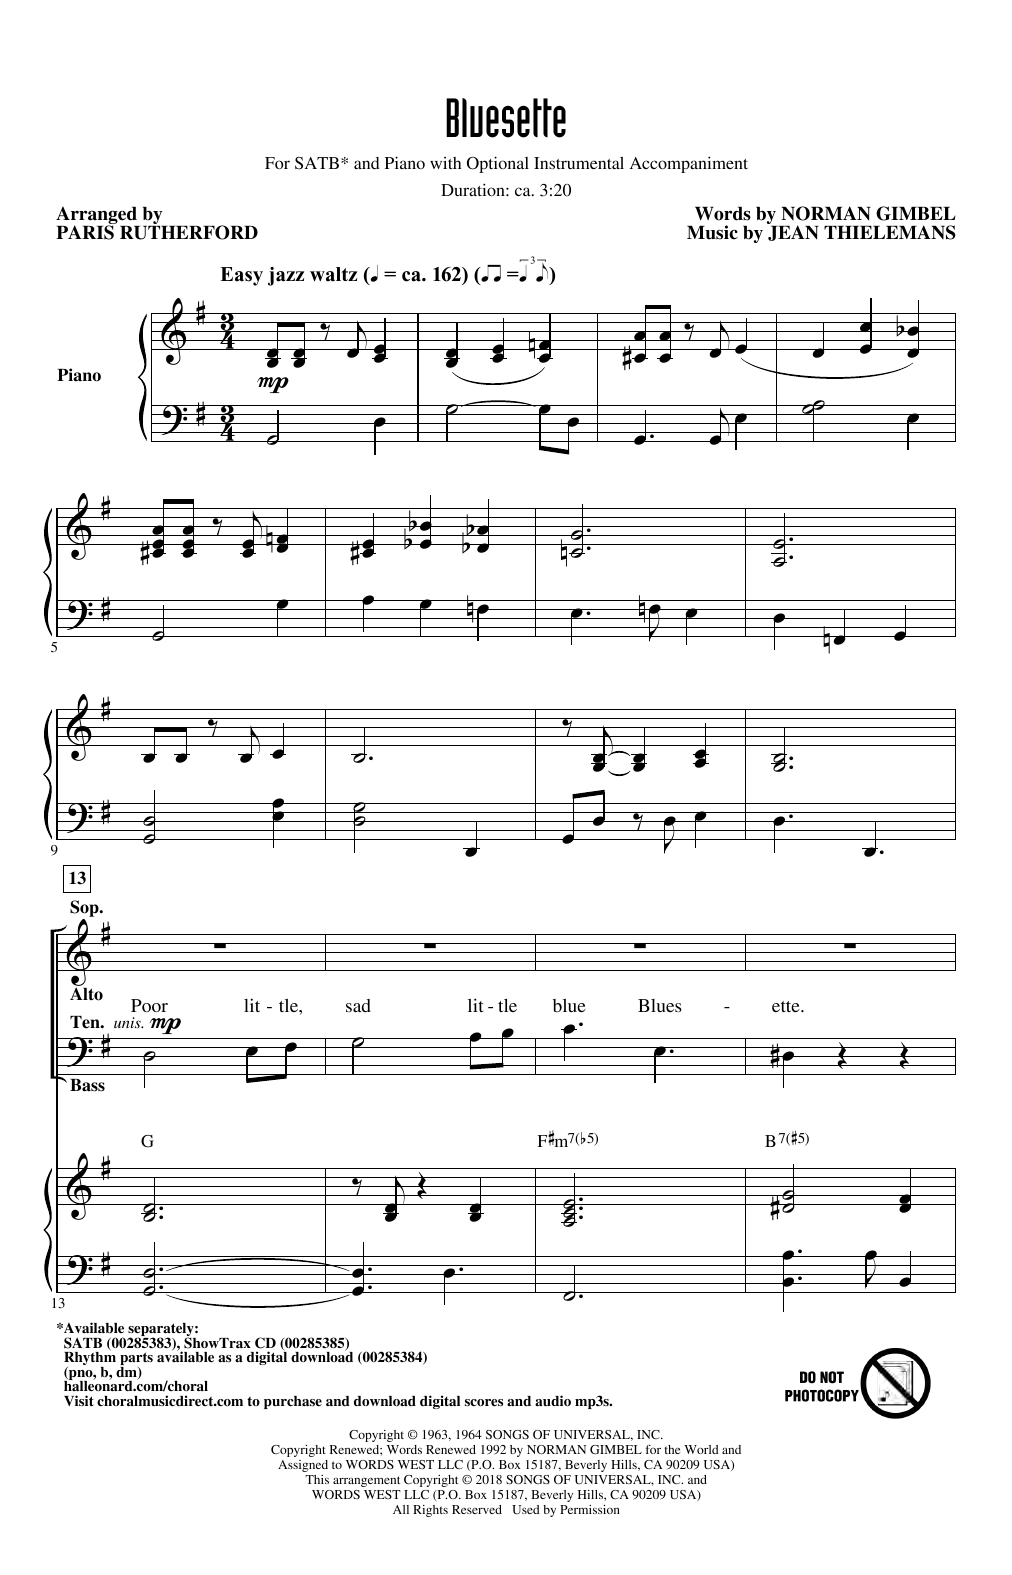 Bluesette (arr. Paris Rutherford) (SATB Choir)